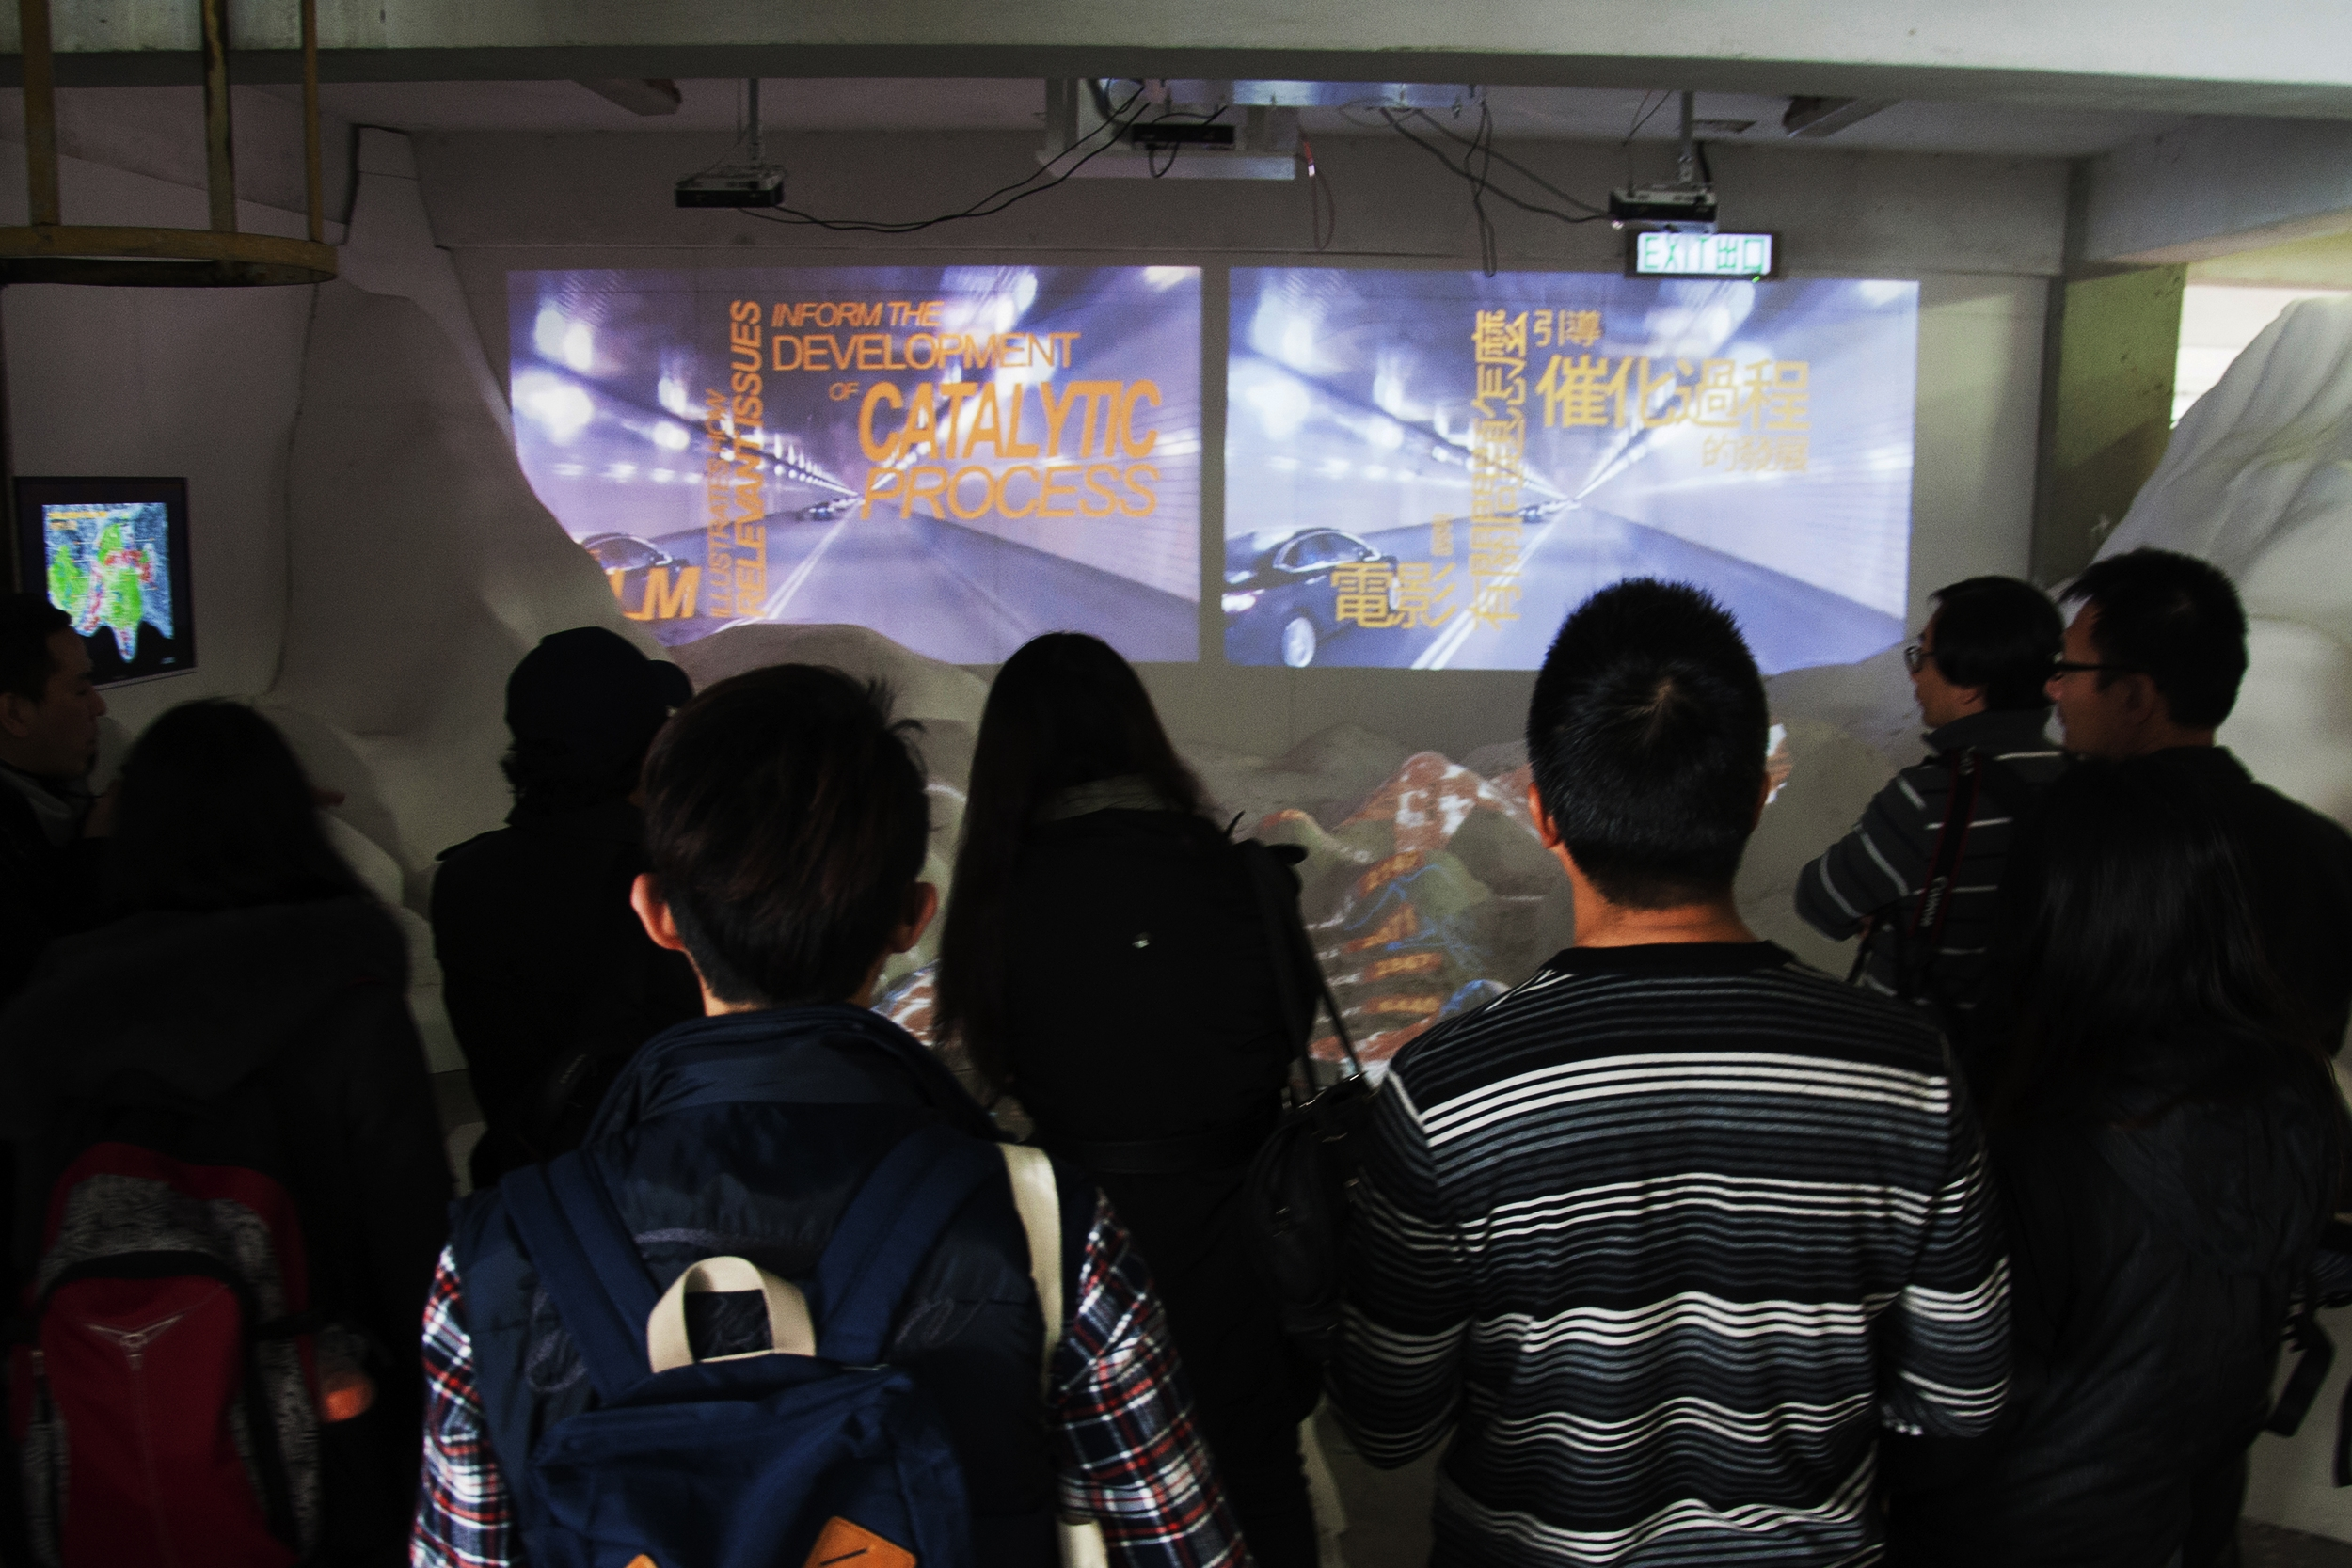 What Will You Demonstrate?Projection explains the RE_EMERGENT Utopia in English and Mandarin